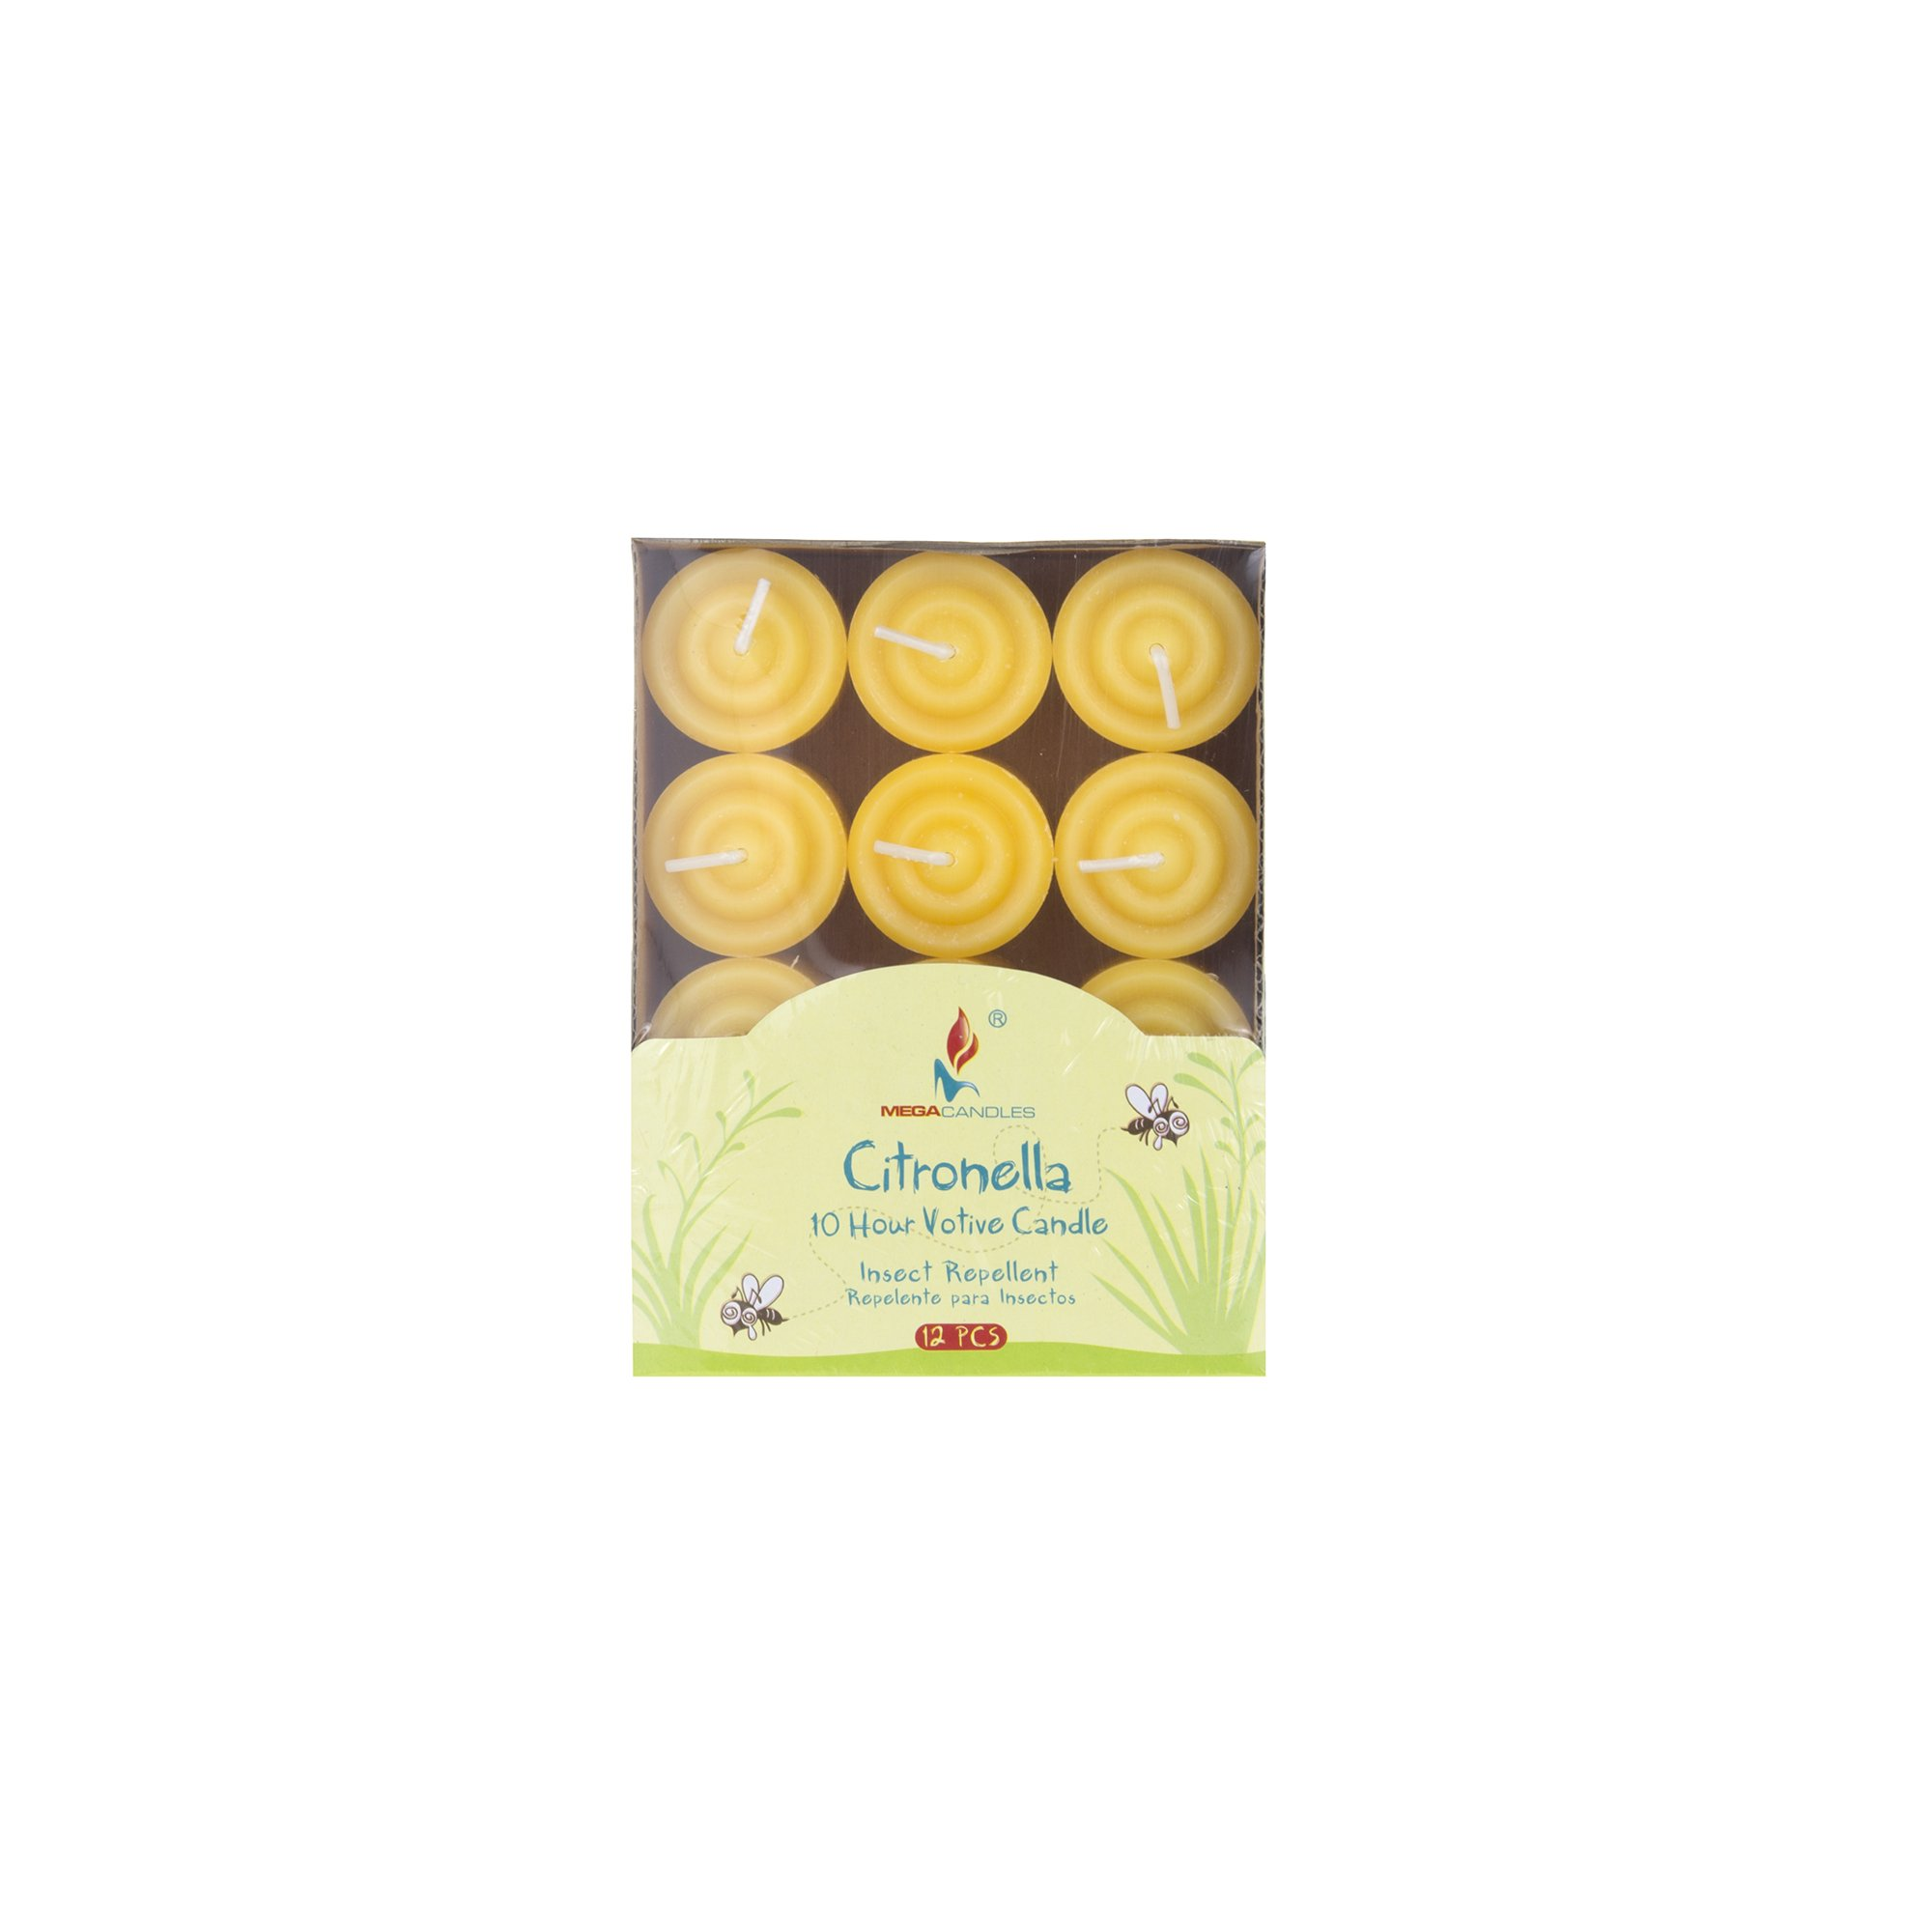 Mega Candles 12 pcs Citronella Votive Candle | Hand Poured Paraffin Wax Candles 8 Hours Candle | Bug Repellent Candles For Indoor And Outdoor Use | Everyday Candles For Mosquitoes And Insects